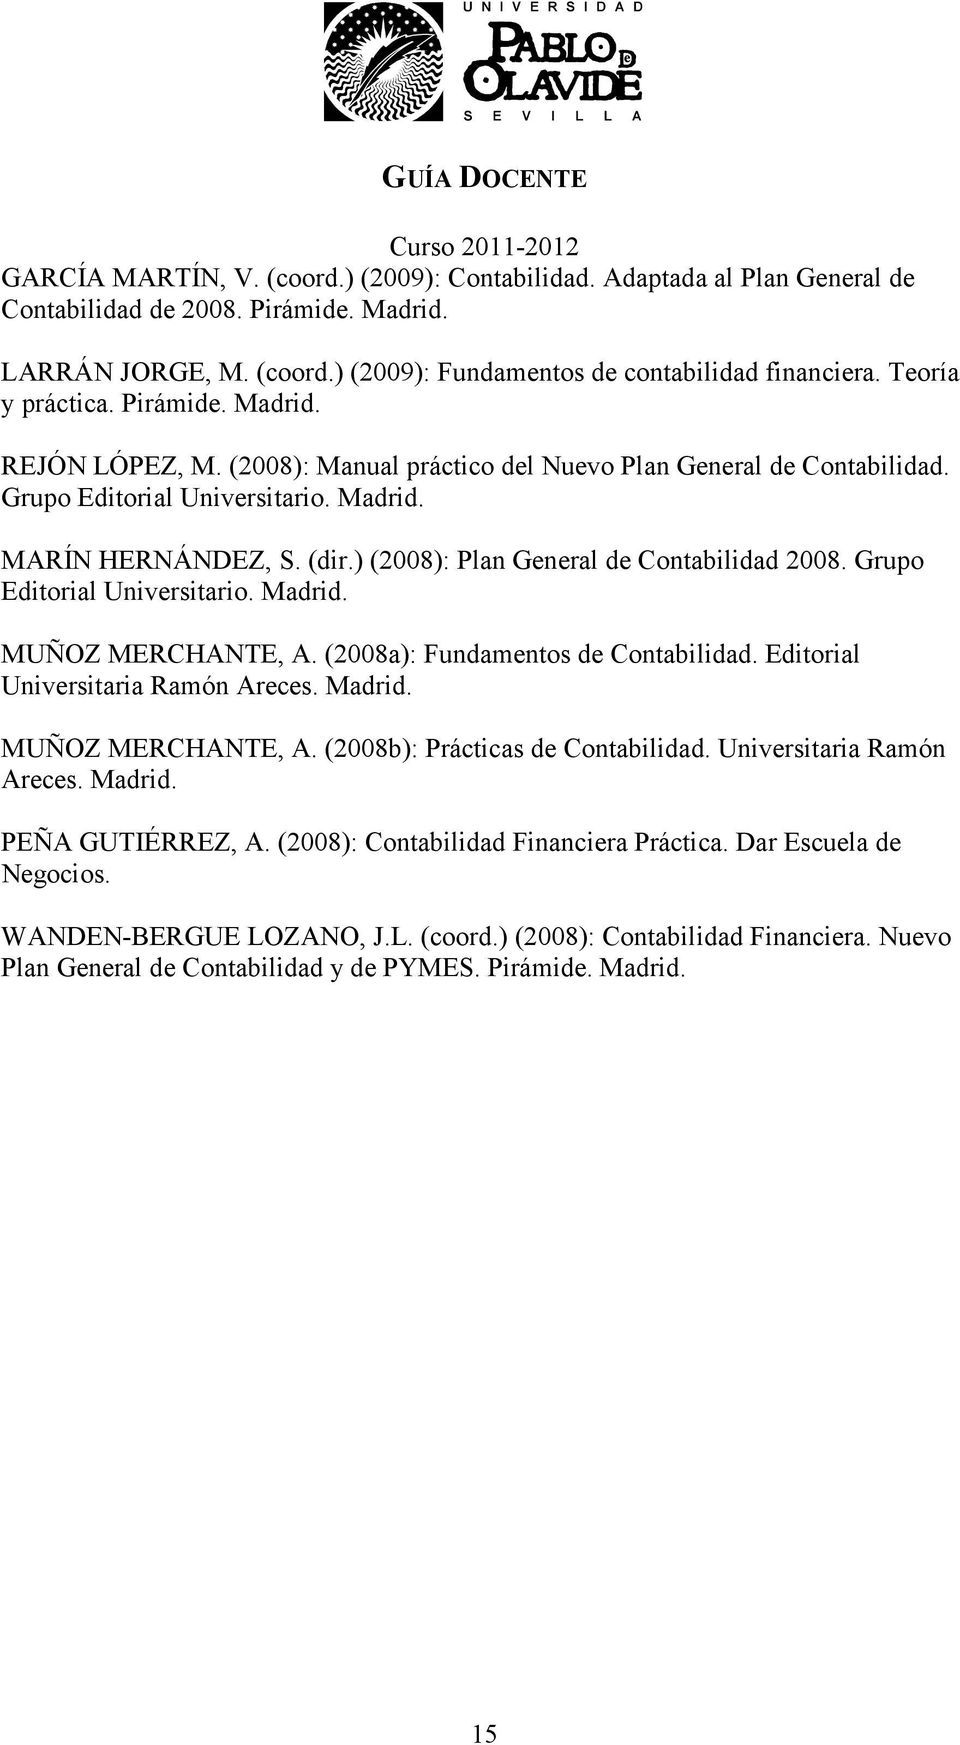 ) (2008): Plan General de Contabilidad 2008. Grupo Editorial Universitario. Madrid. MUÑOZ MERCHANTE, A. (2008a): Fundamentos de Contabilidad. Editorial Universitaria Ramón Areces. Madrid. MUÑOZ MERCHANTE, A. (2008b): Prácticas de Contabilidad.